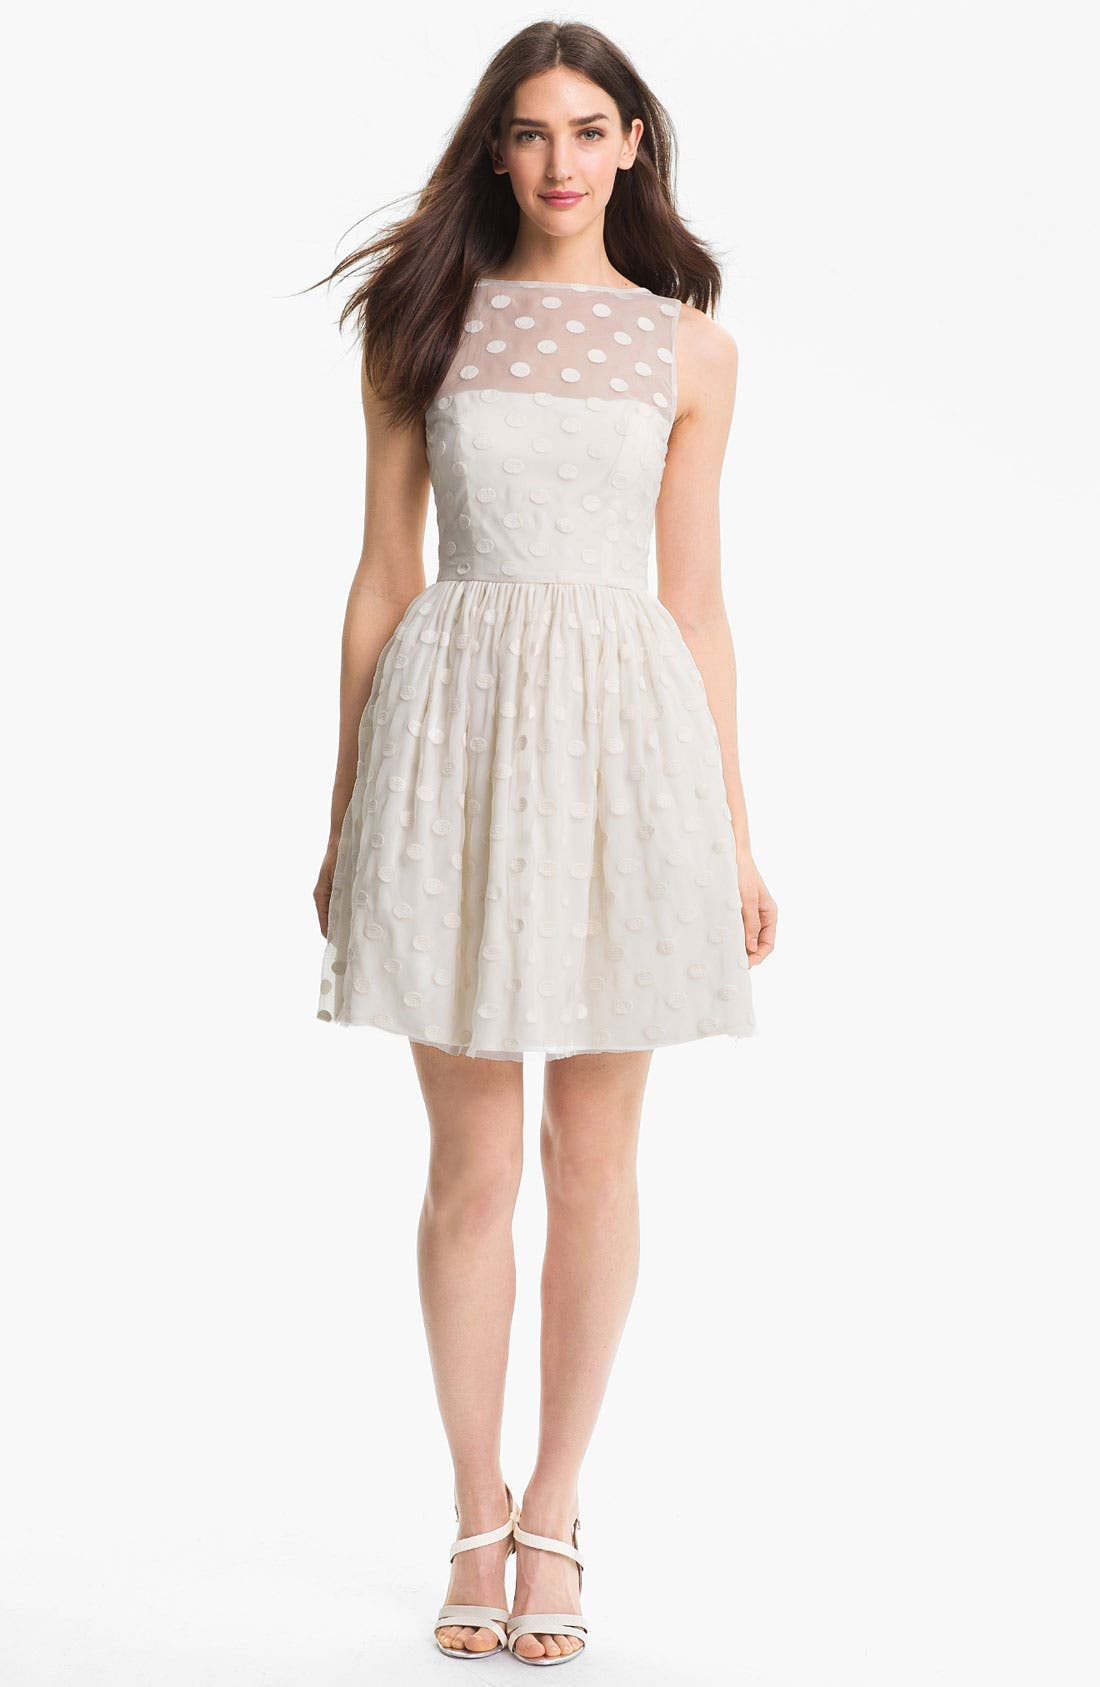 Main Image - Jill Jill Stuart Polka Dot Fit & Flare Dress